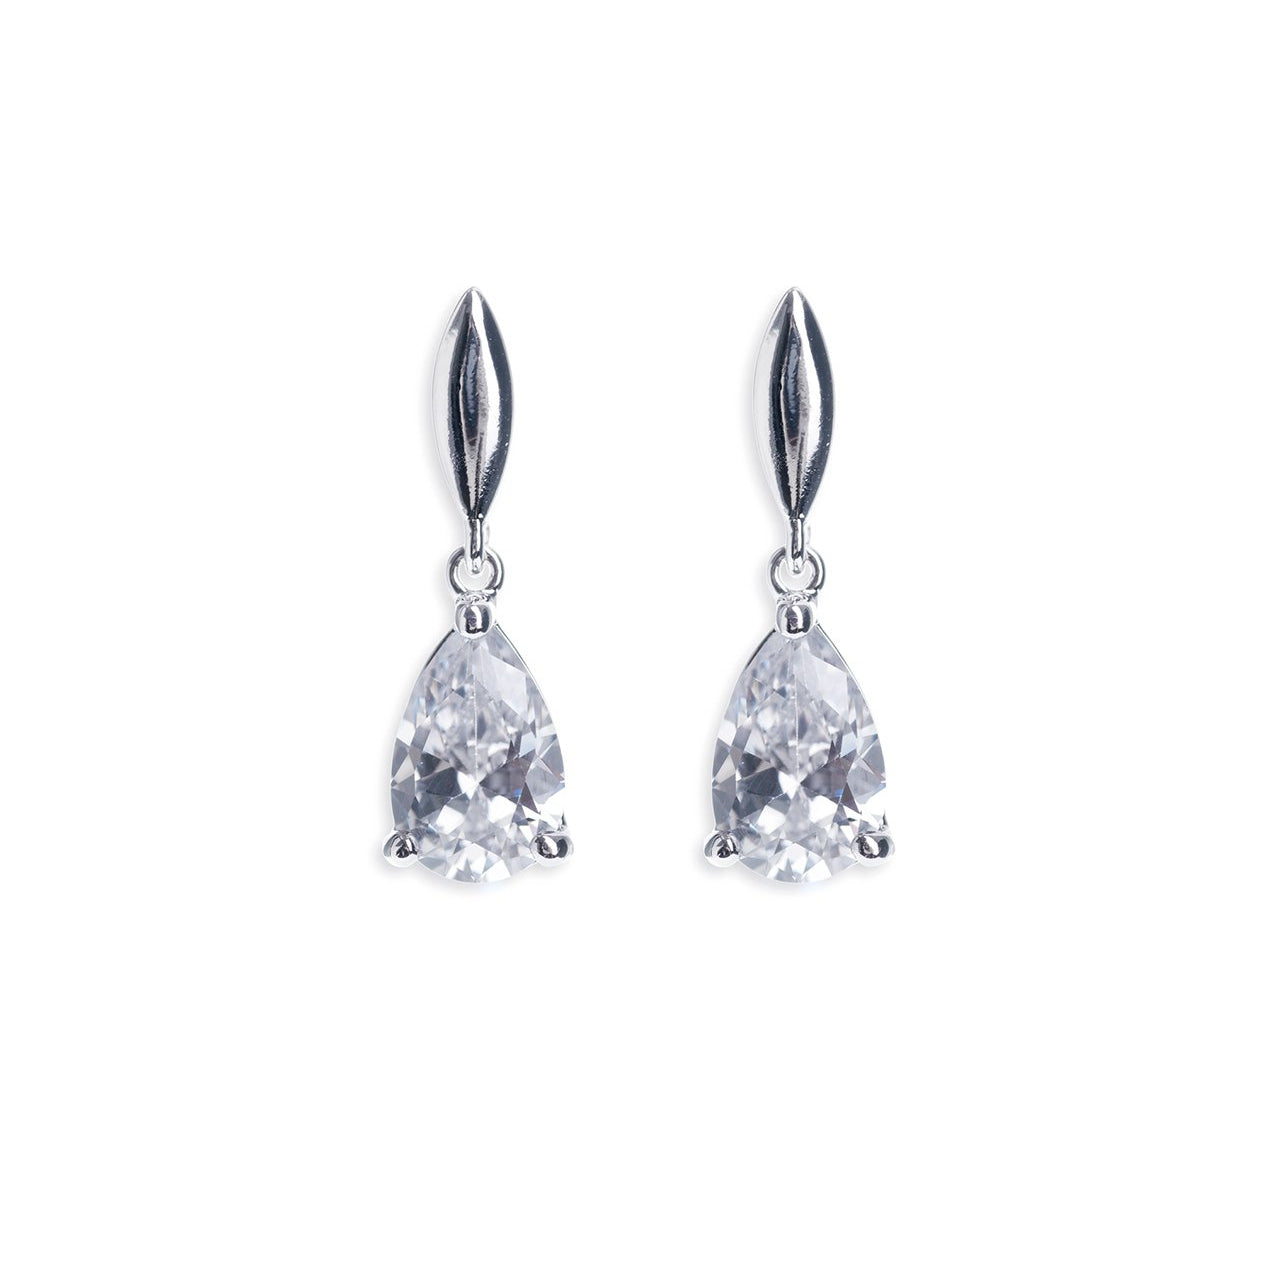 BOUCLES D'OREILLES<br>Vanderbilt - MP Paris